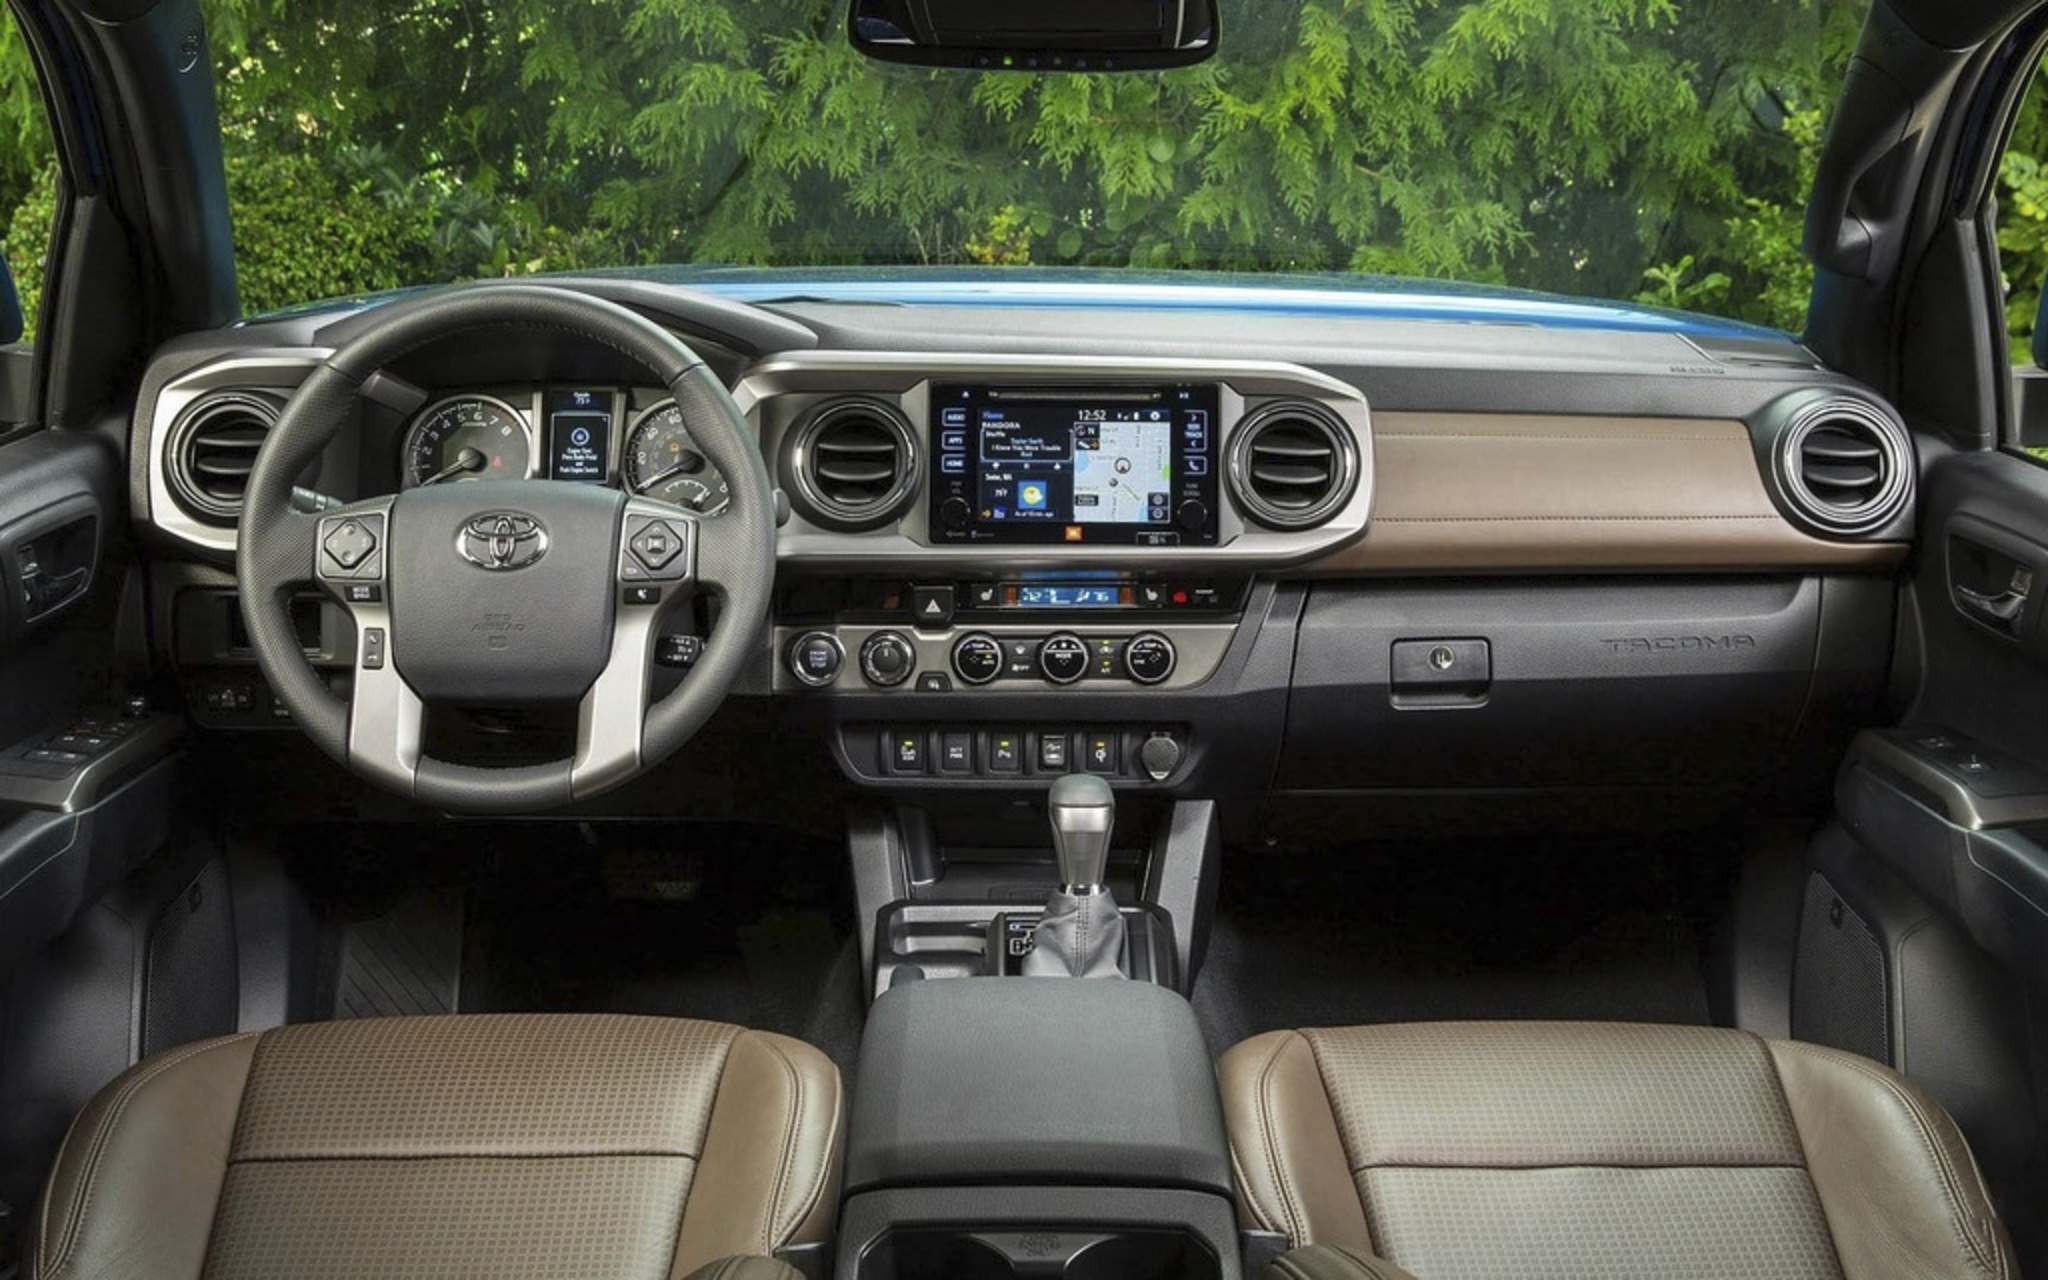 The Tacoma's interior incorporates updated multimedia features.